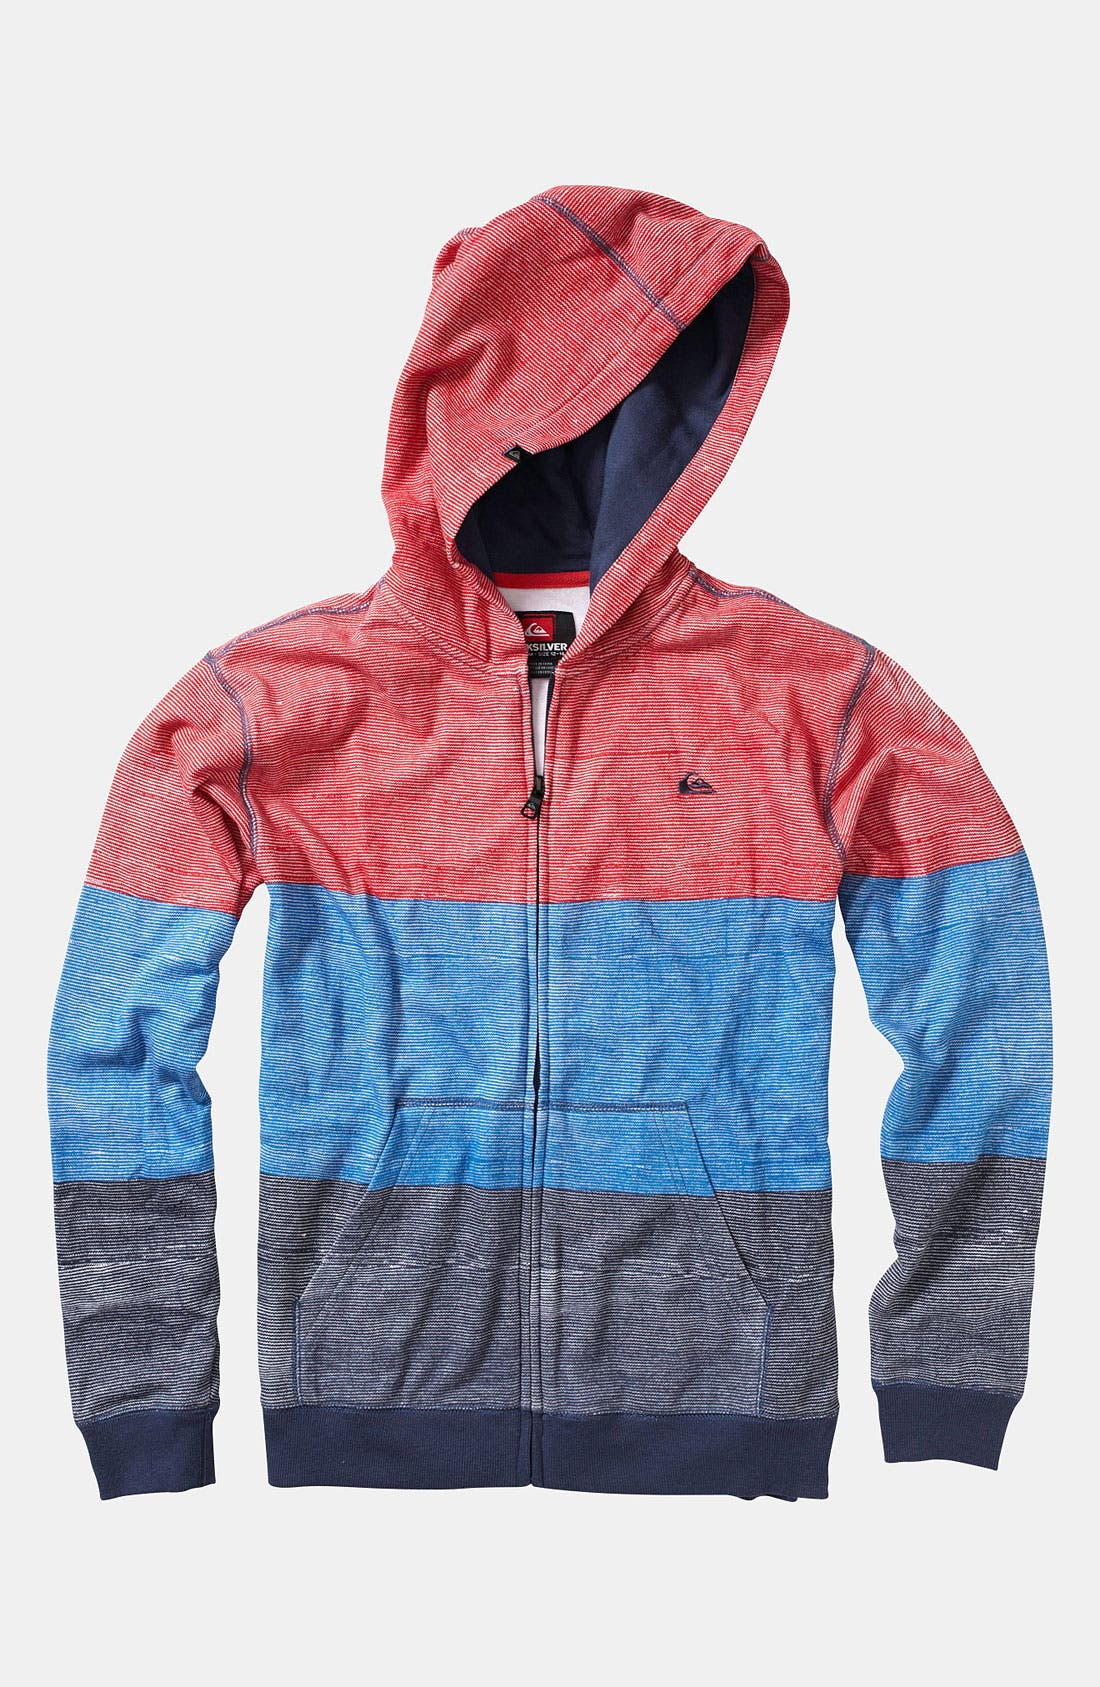 Alternate Image 1 Selected - Quiksilver 'Suave 2' Hoodie (Toddler)